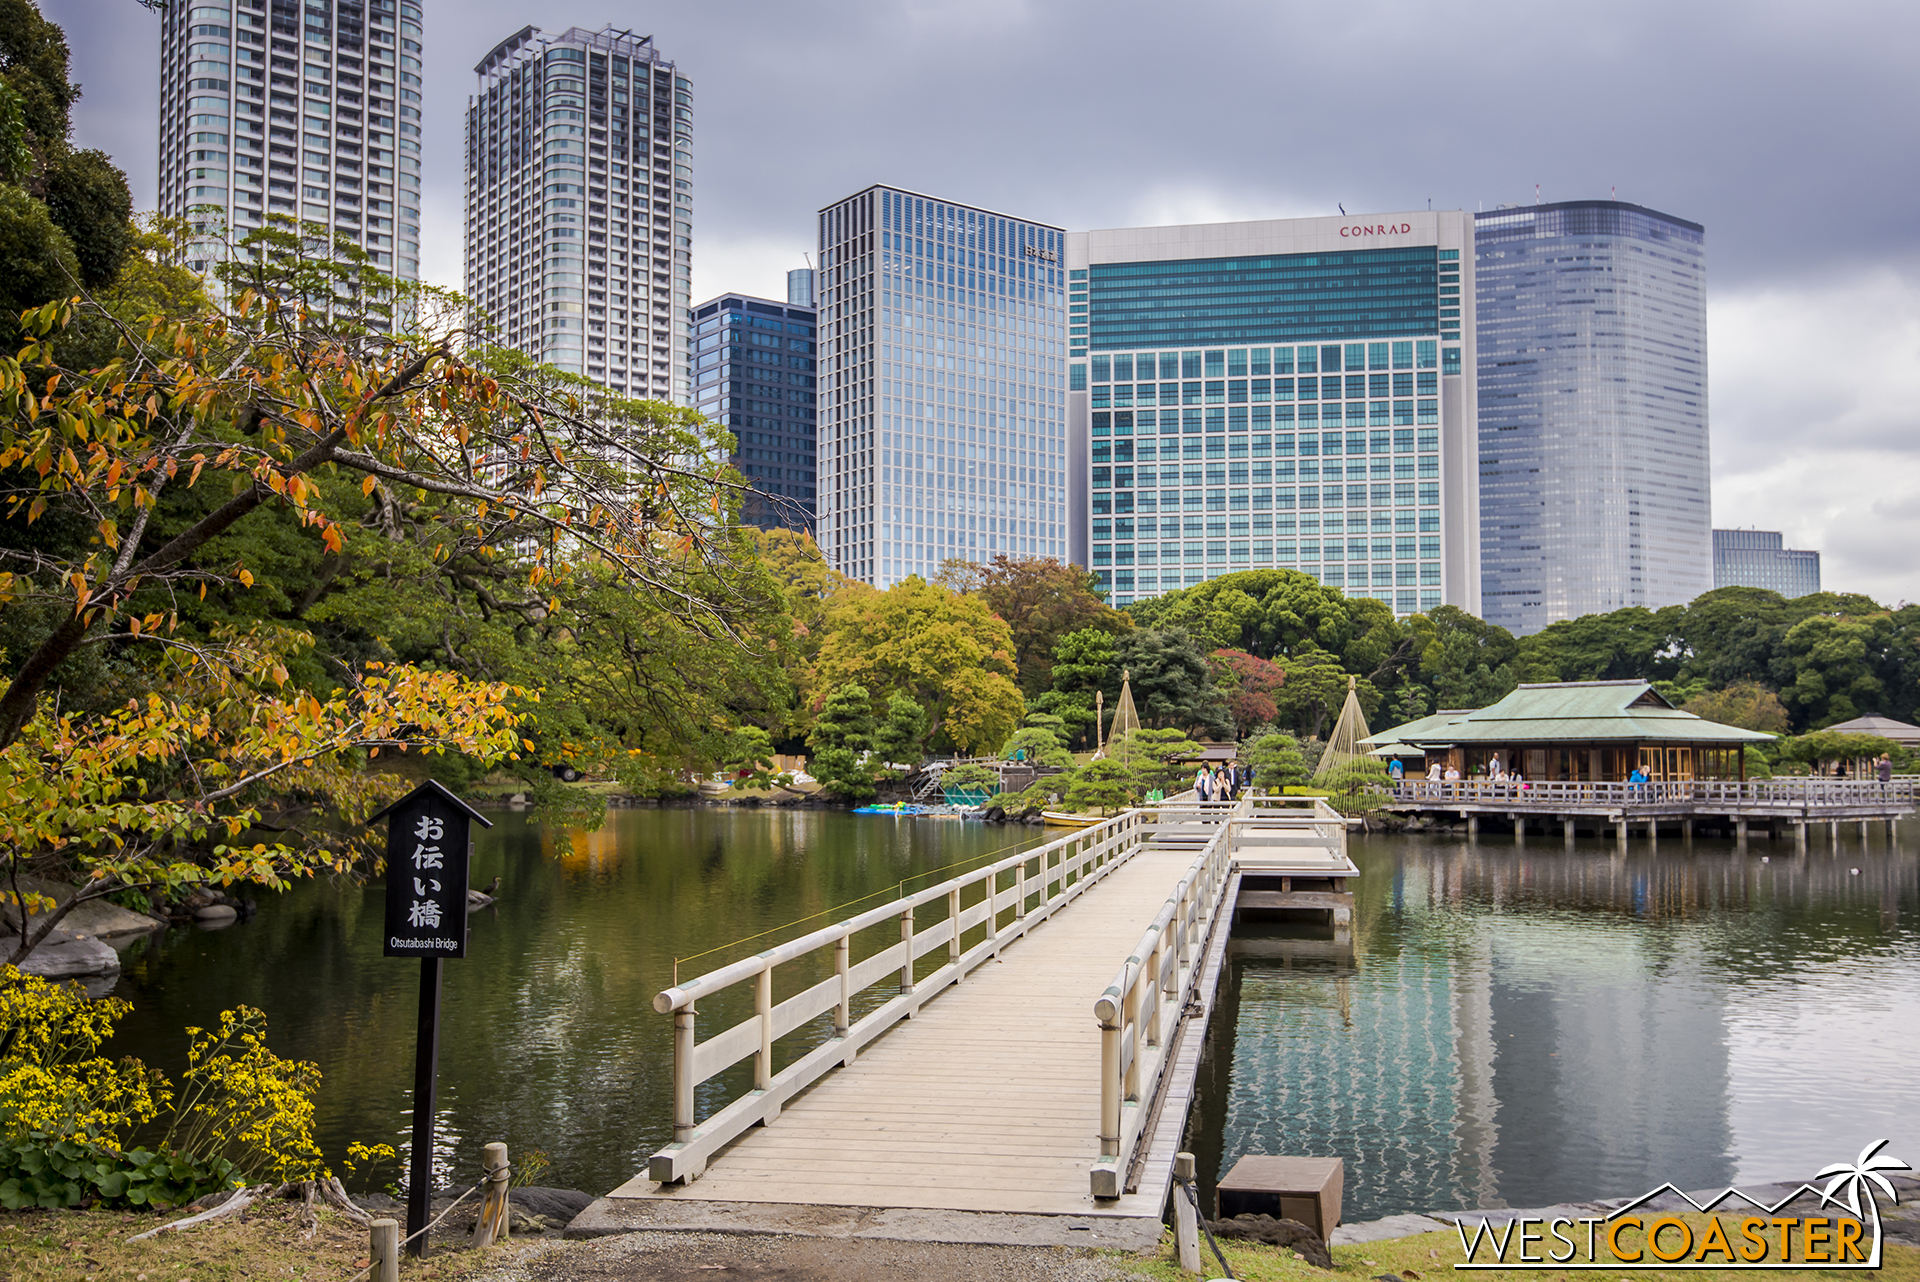 Hama-rikyu Gardens, located off Tokyo Bay near Tsukiji, offers a tranquil urban oasis in the middle of the bustling city.